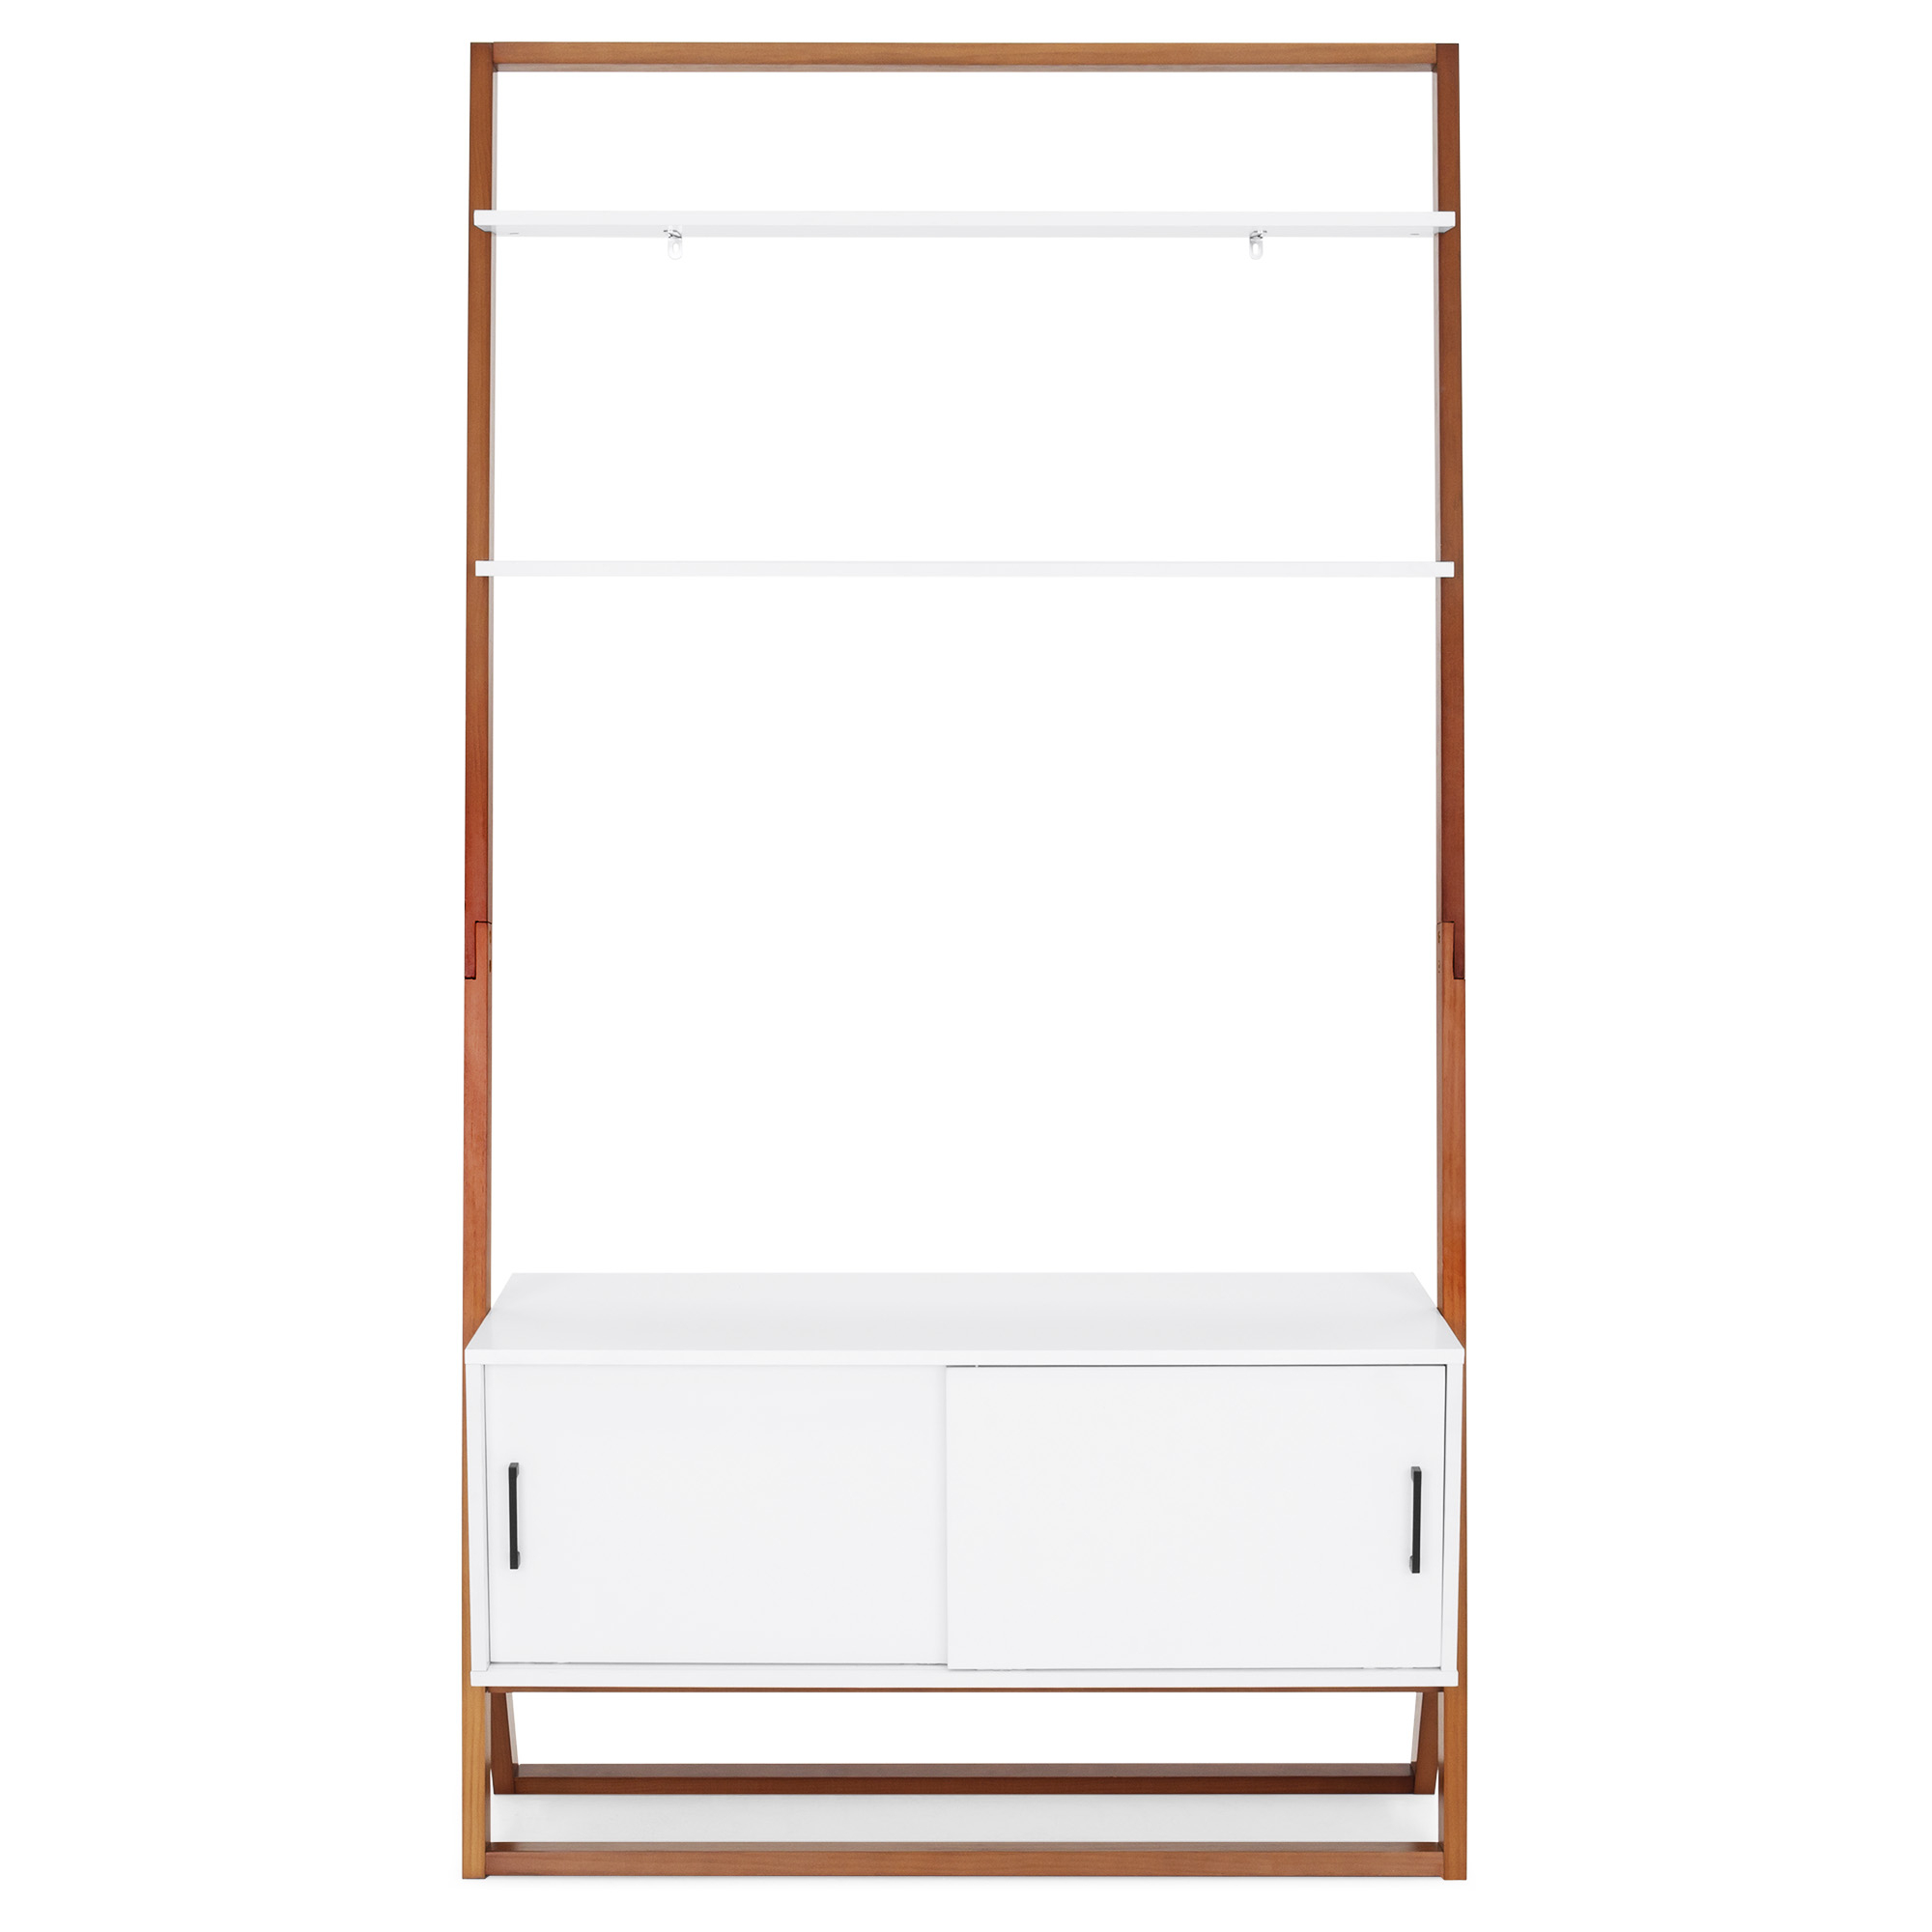 Bcp 42in Ladder Shelf Tv Stand W/ Cabinet – White In Tiva White Ladder Tv Stands (View 13 of 20)